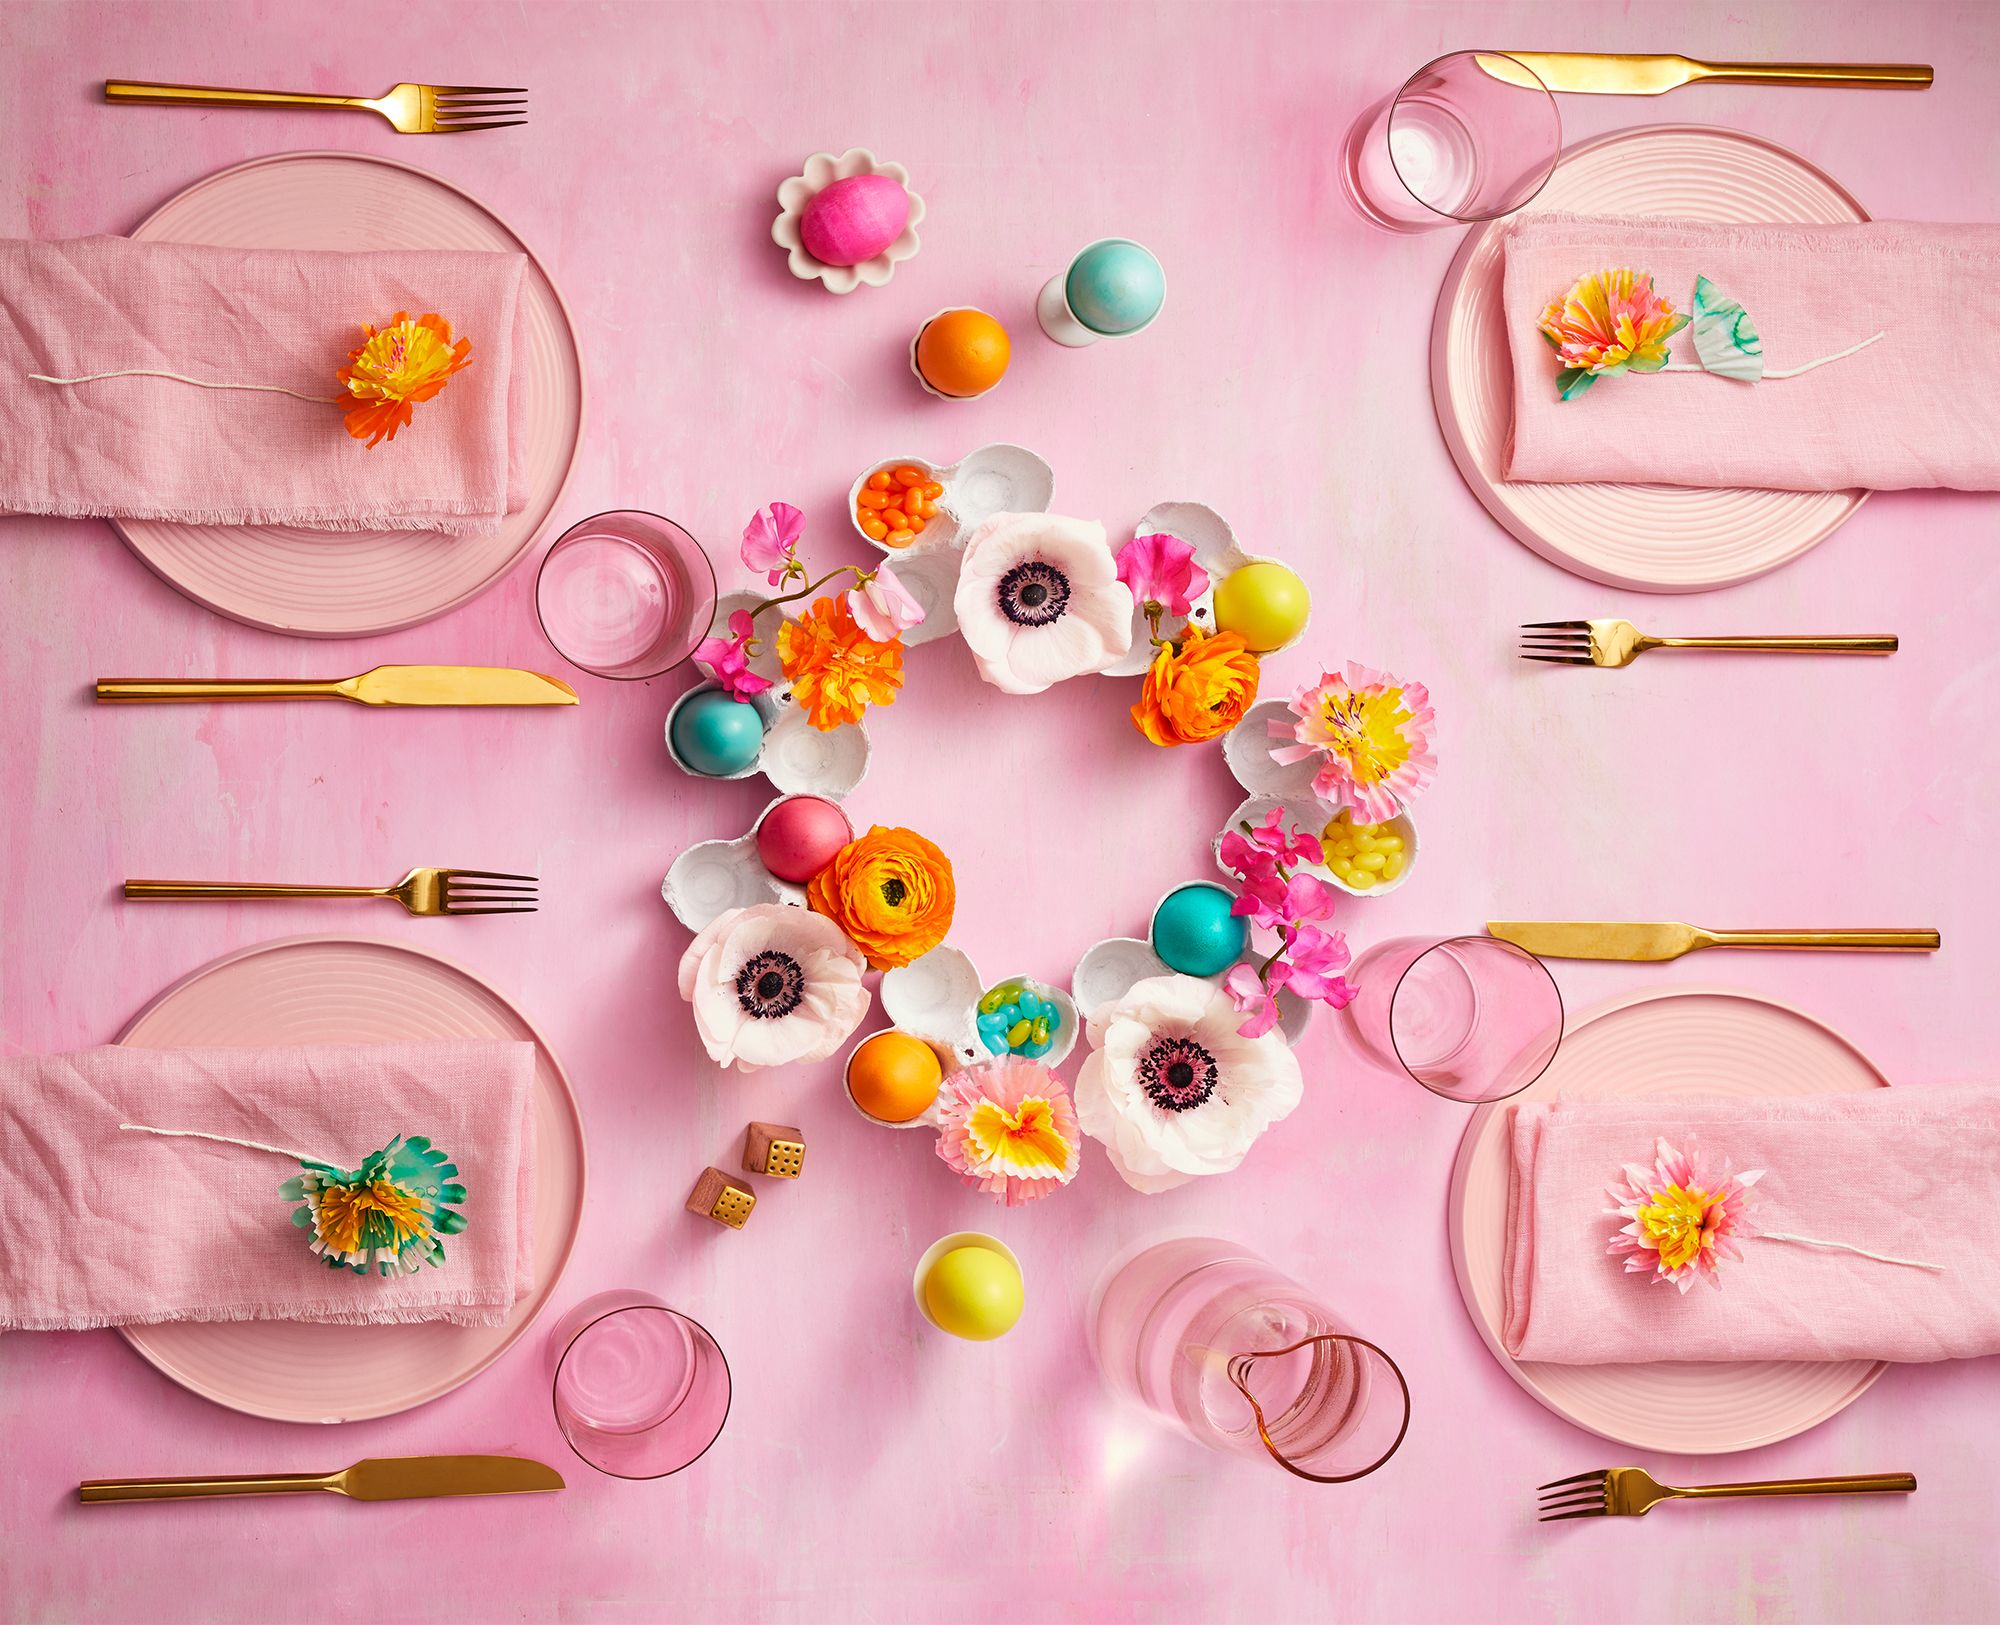 60 Best Easter Decoration Ideas 2021 Diy Table Home Decor For Easter Sunday